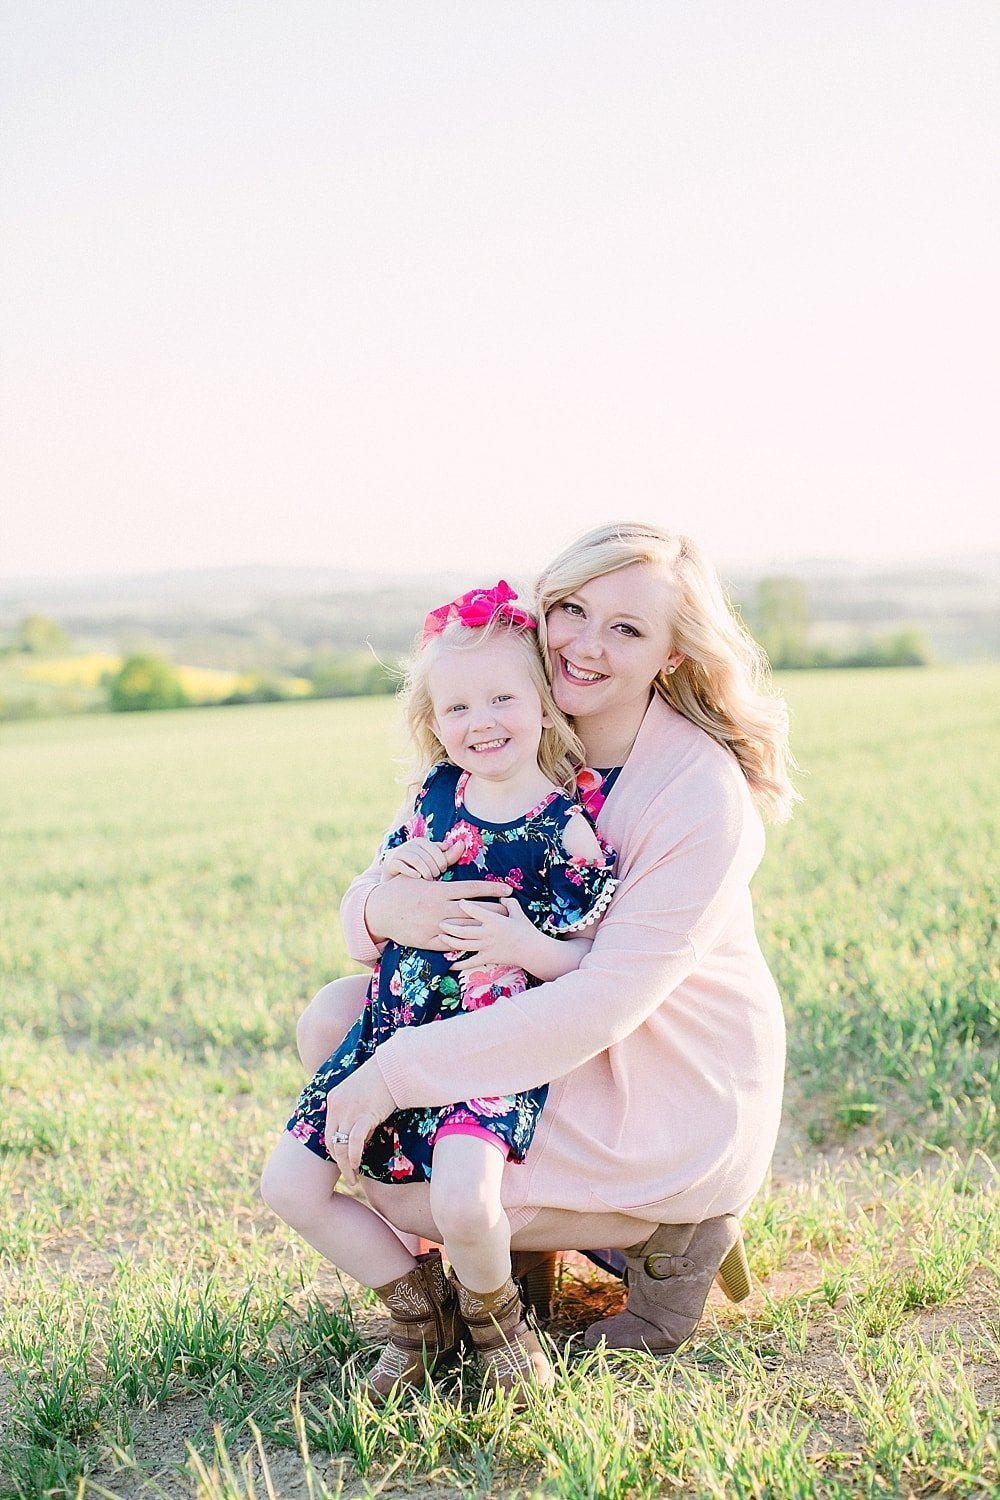 Houston family photography session photographed by Alicia Yarrish Photography